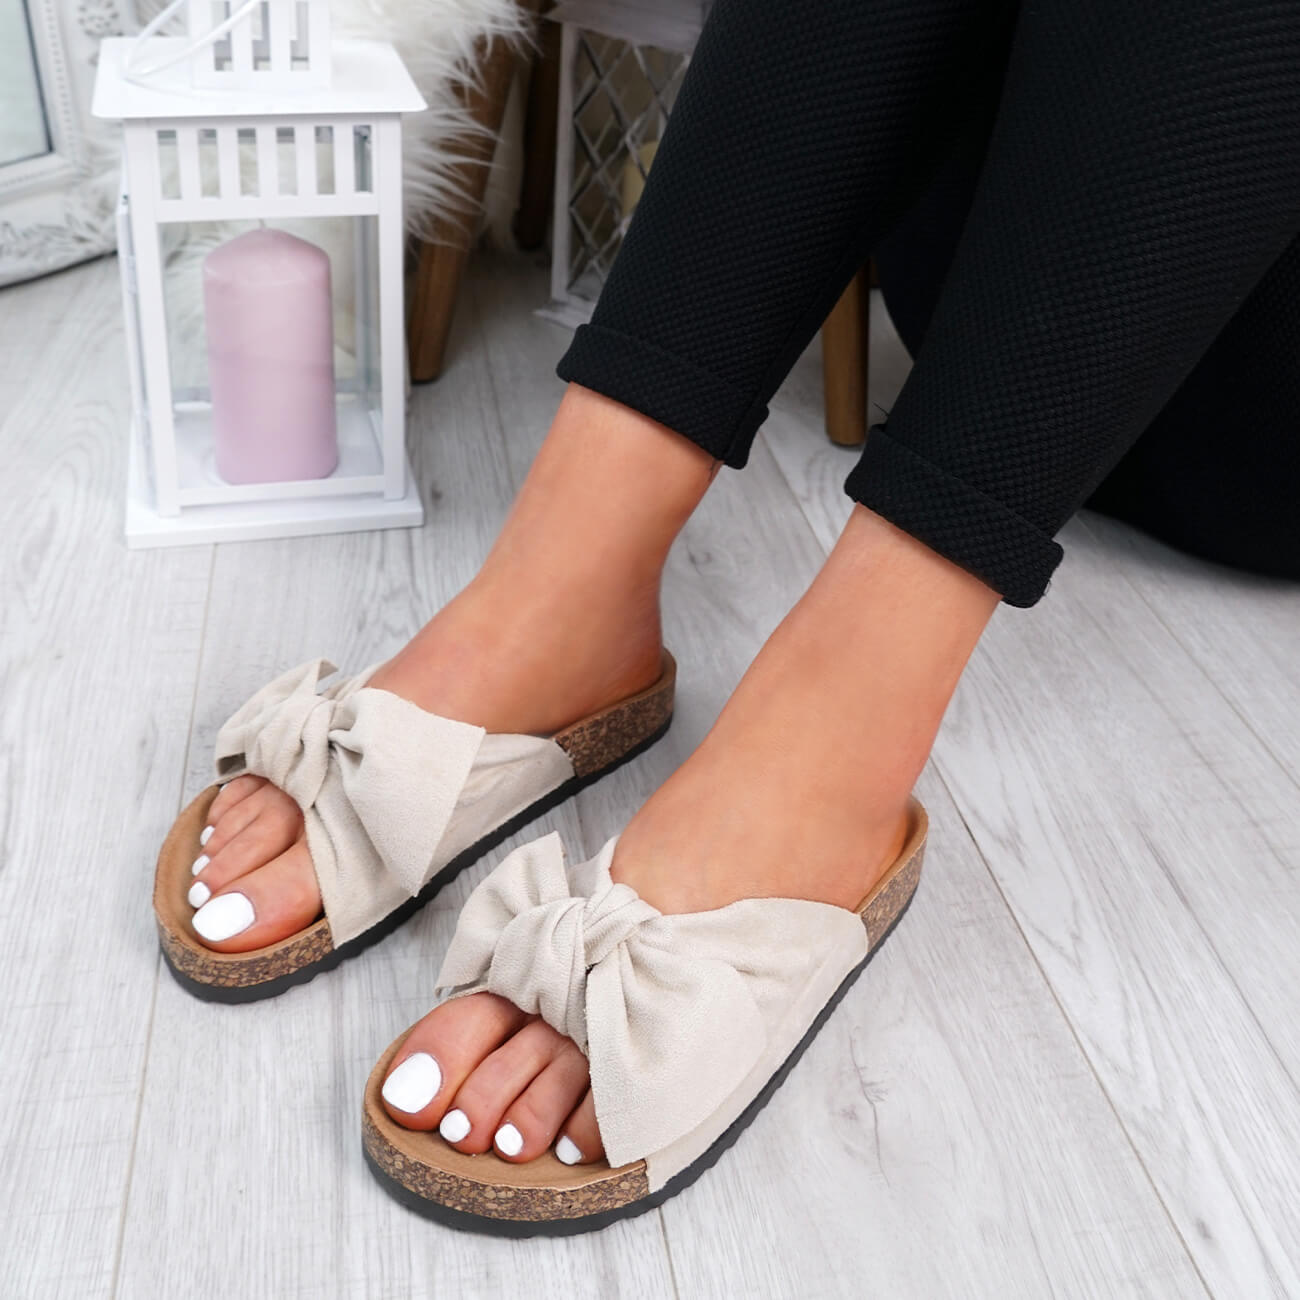 WOMENS-LADIES-SLIP-ON-FLAT-SANDALS-BOW-SLIDERS-SUMMER-CASUAL-SHOES-SIZE thumbnail 10